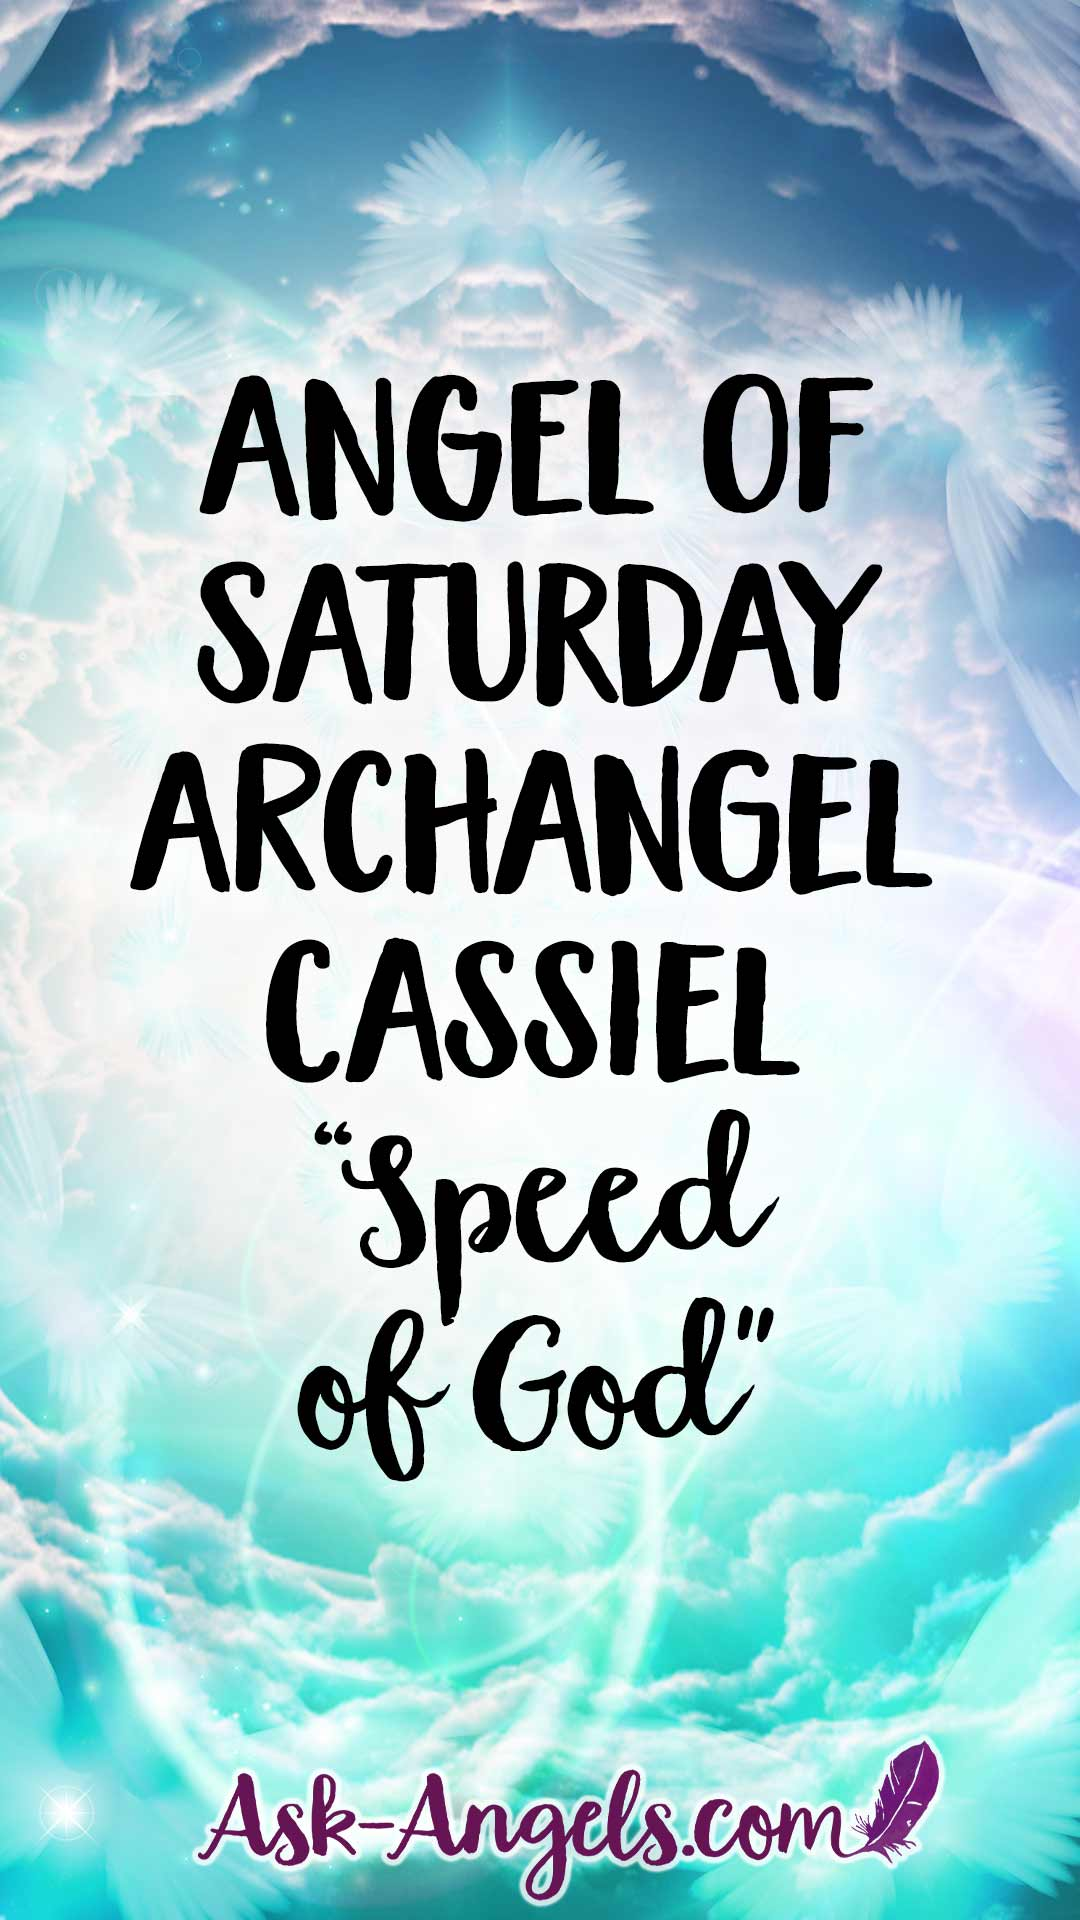 Archangel Cassiel - Archangel of Saturday - Speed of God